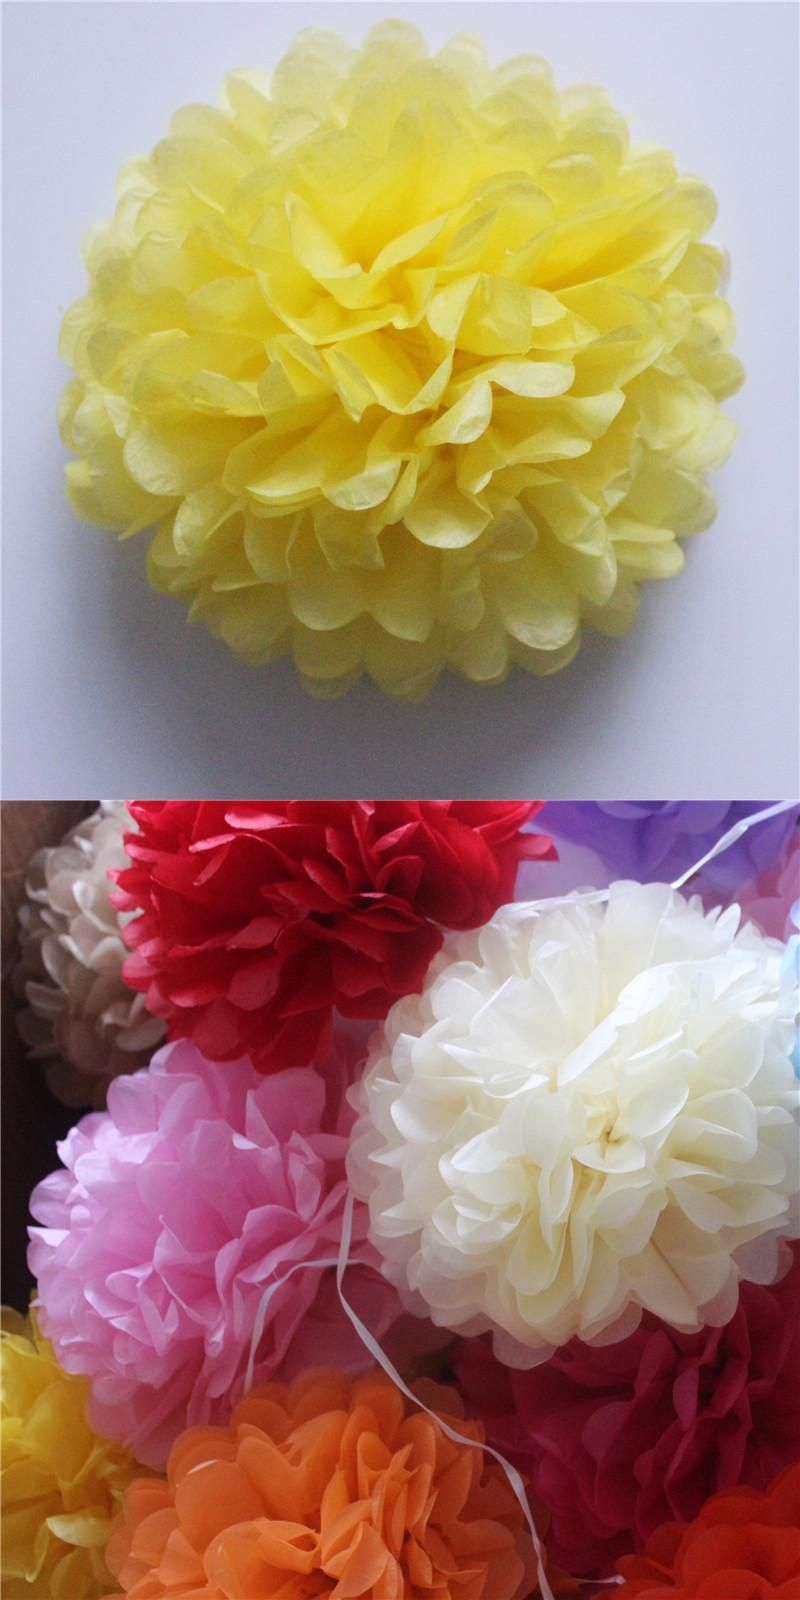 10cm4inch 10pcslot Small Hanging Tissue Paper Pom Pom Flowers